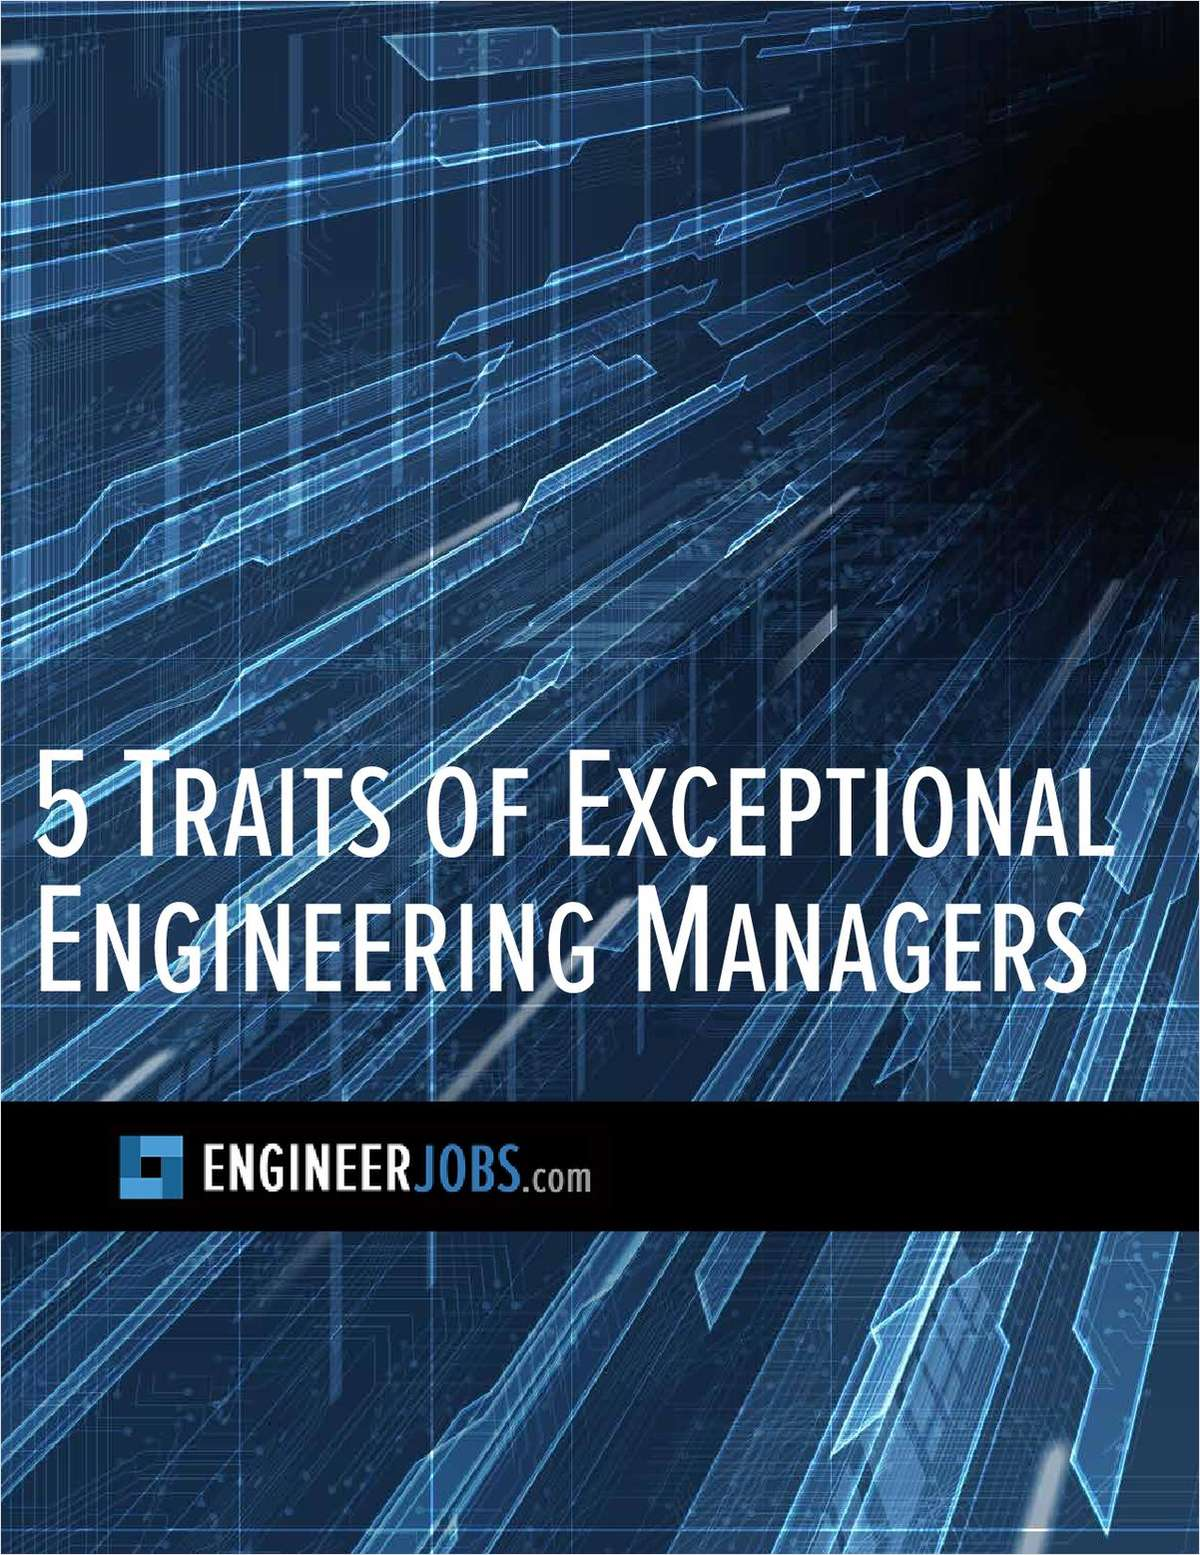 5 Traits of Exceptional Engineering Managers